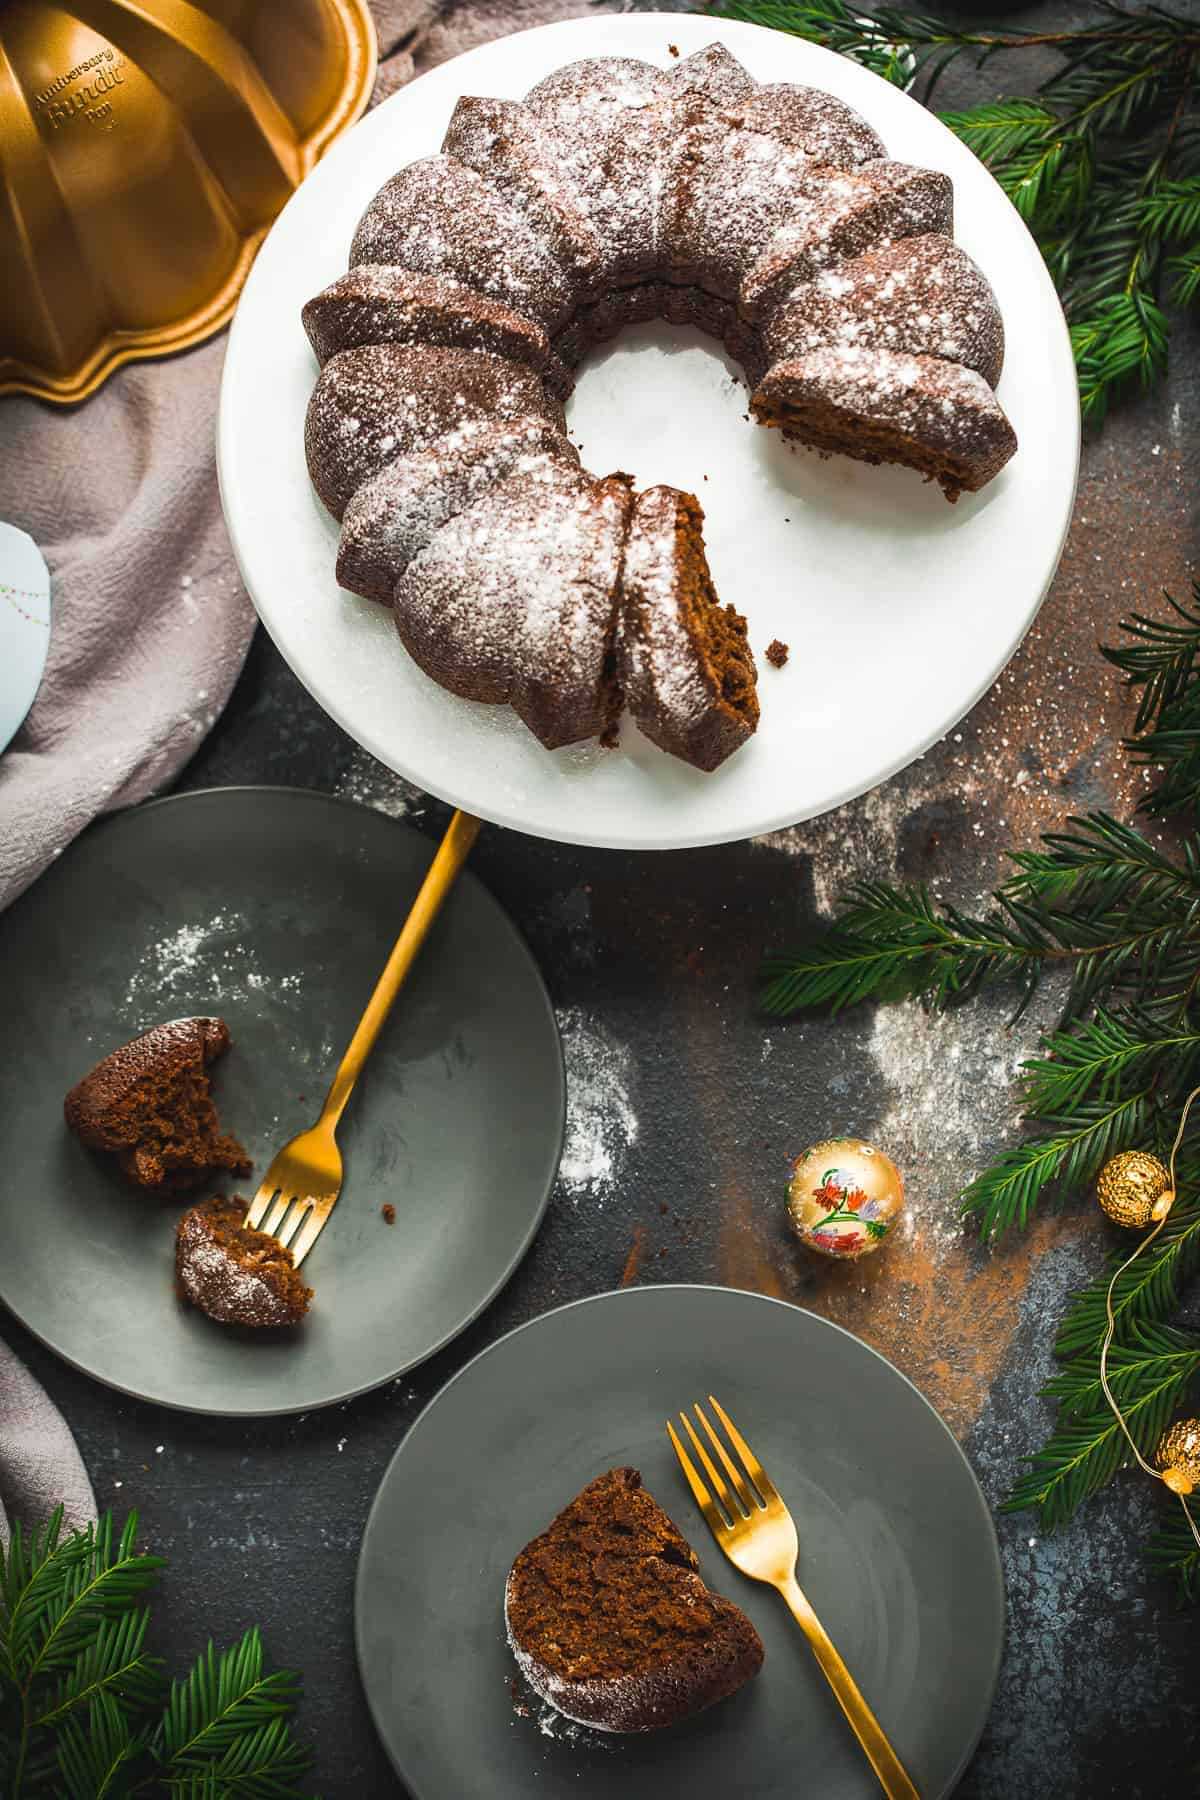 Overhead view of a bundt cake on a white platter. Two pieces have been cut out and they have been placed onto dark grey plates with gold coloured forks. The scene is surrounded by Christmas decorations and looks very festive.